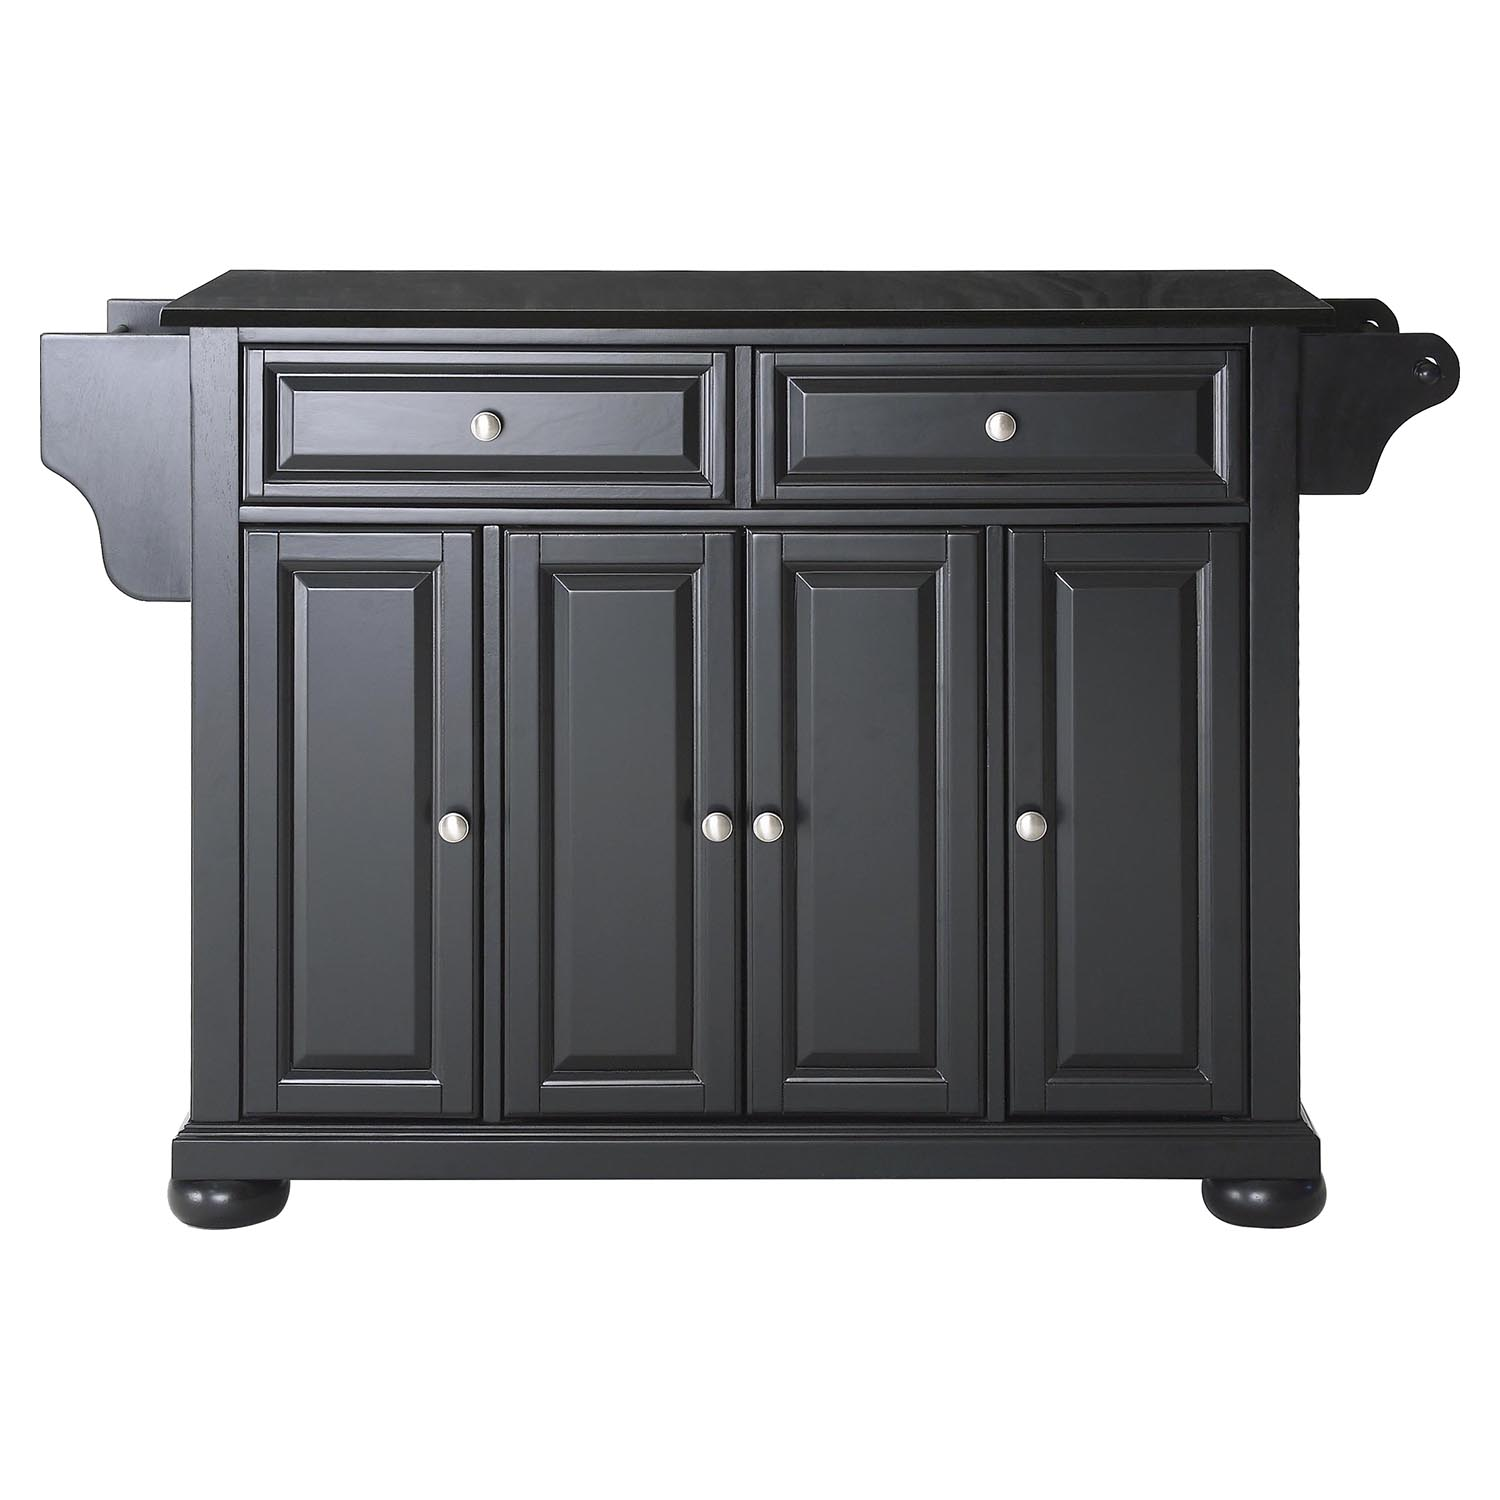 Alexandria Solid Black Granite Top Kitchen Island - Black - CROS-KF30004ABK